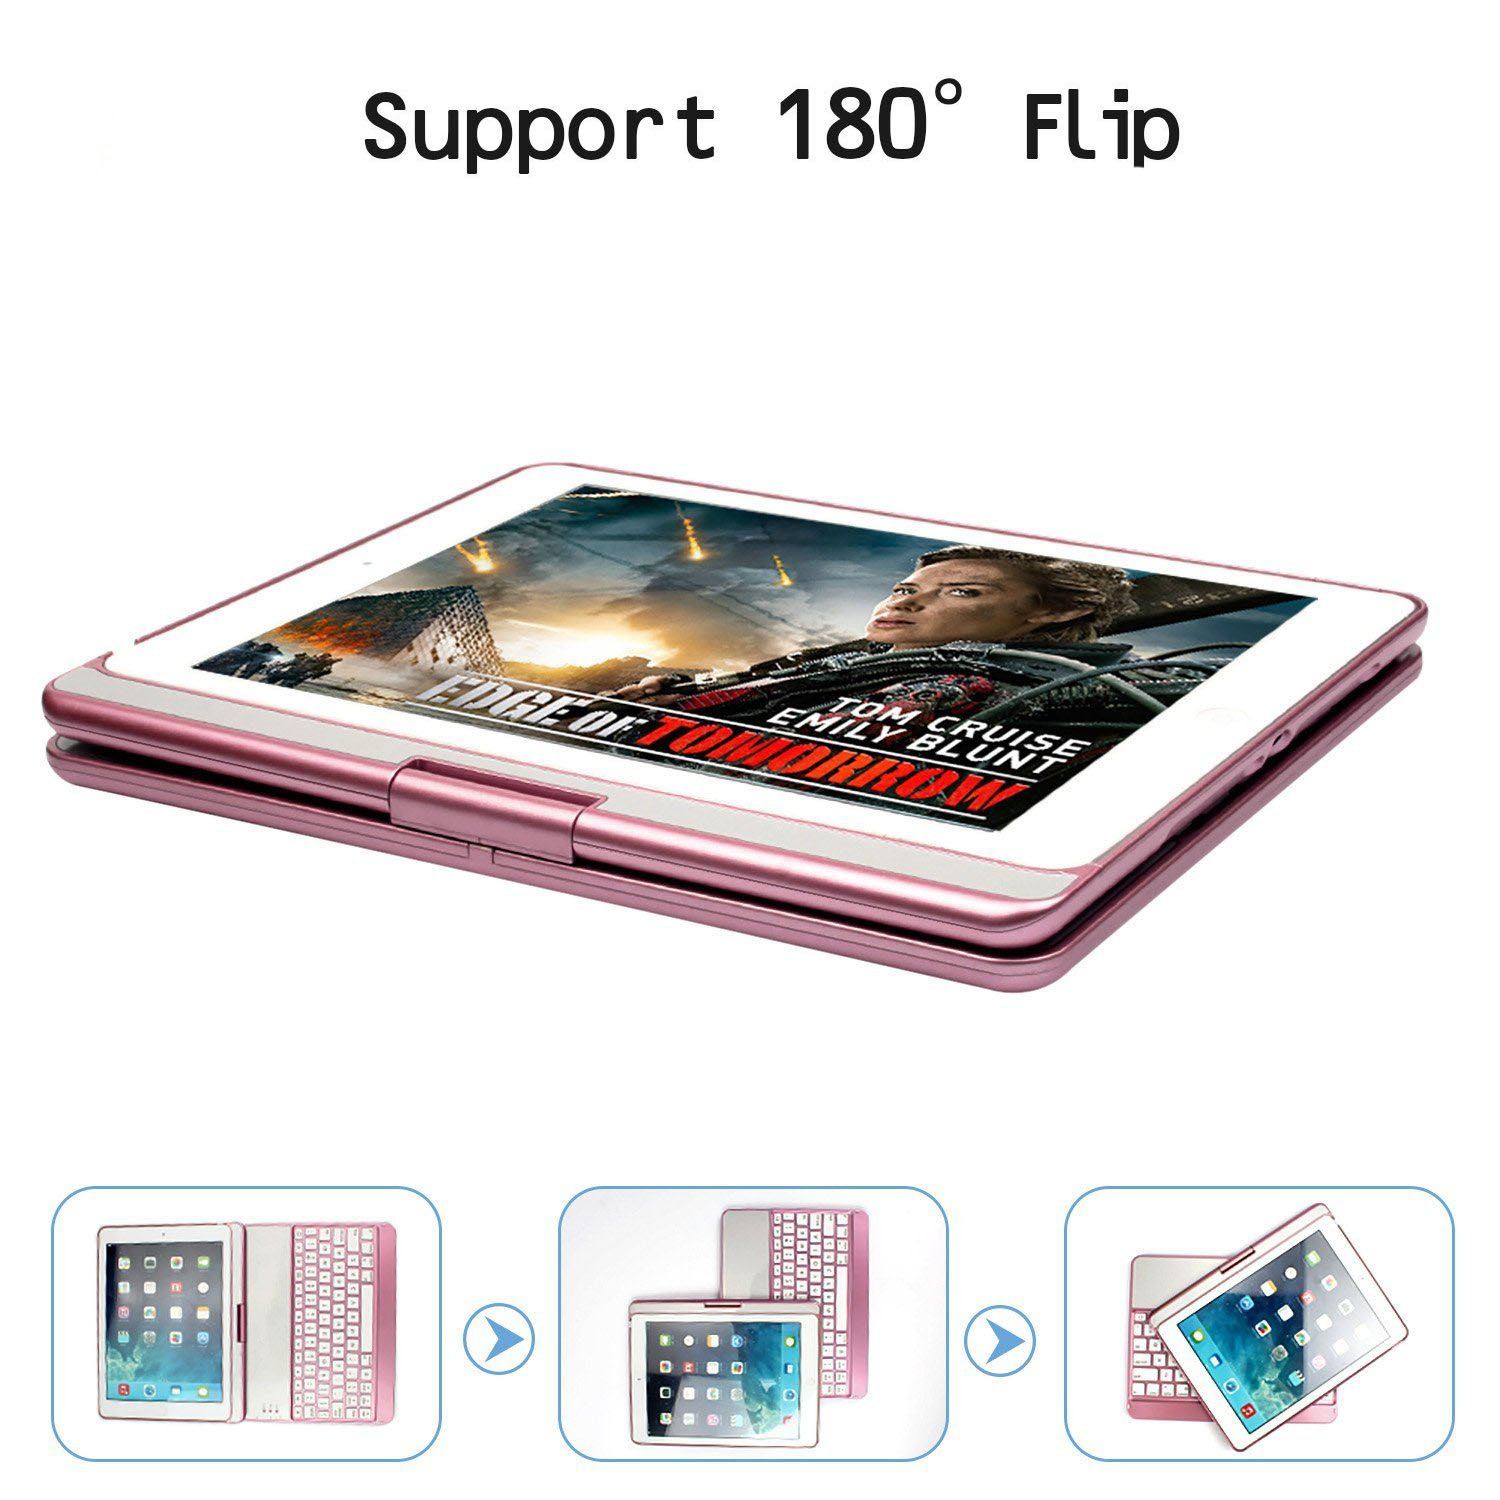 Sammid Bluetooth Keyboard Case for 2018 New iPad 9.7, 360 Degree Rotation with Multiple Angle Viewing Keyboard Case Smart Auto Sleep-Wake Cover for 9.7 inch 2017/2018 New iPad - Rose Gold by Sammid (Image #6)